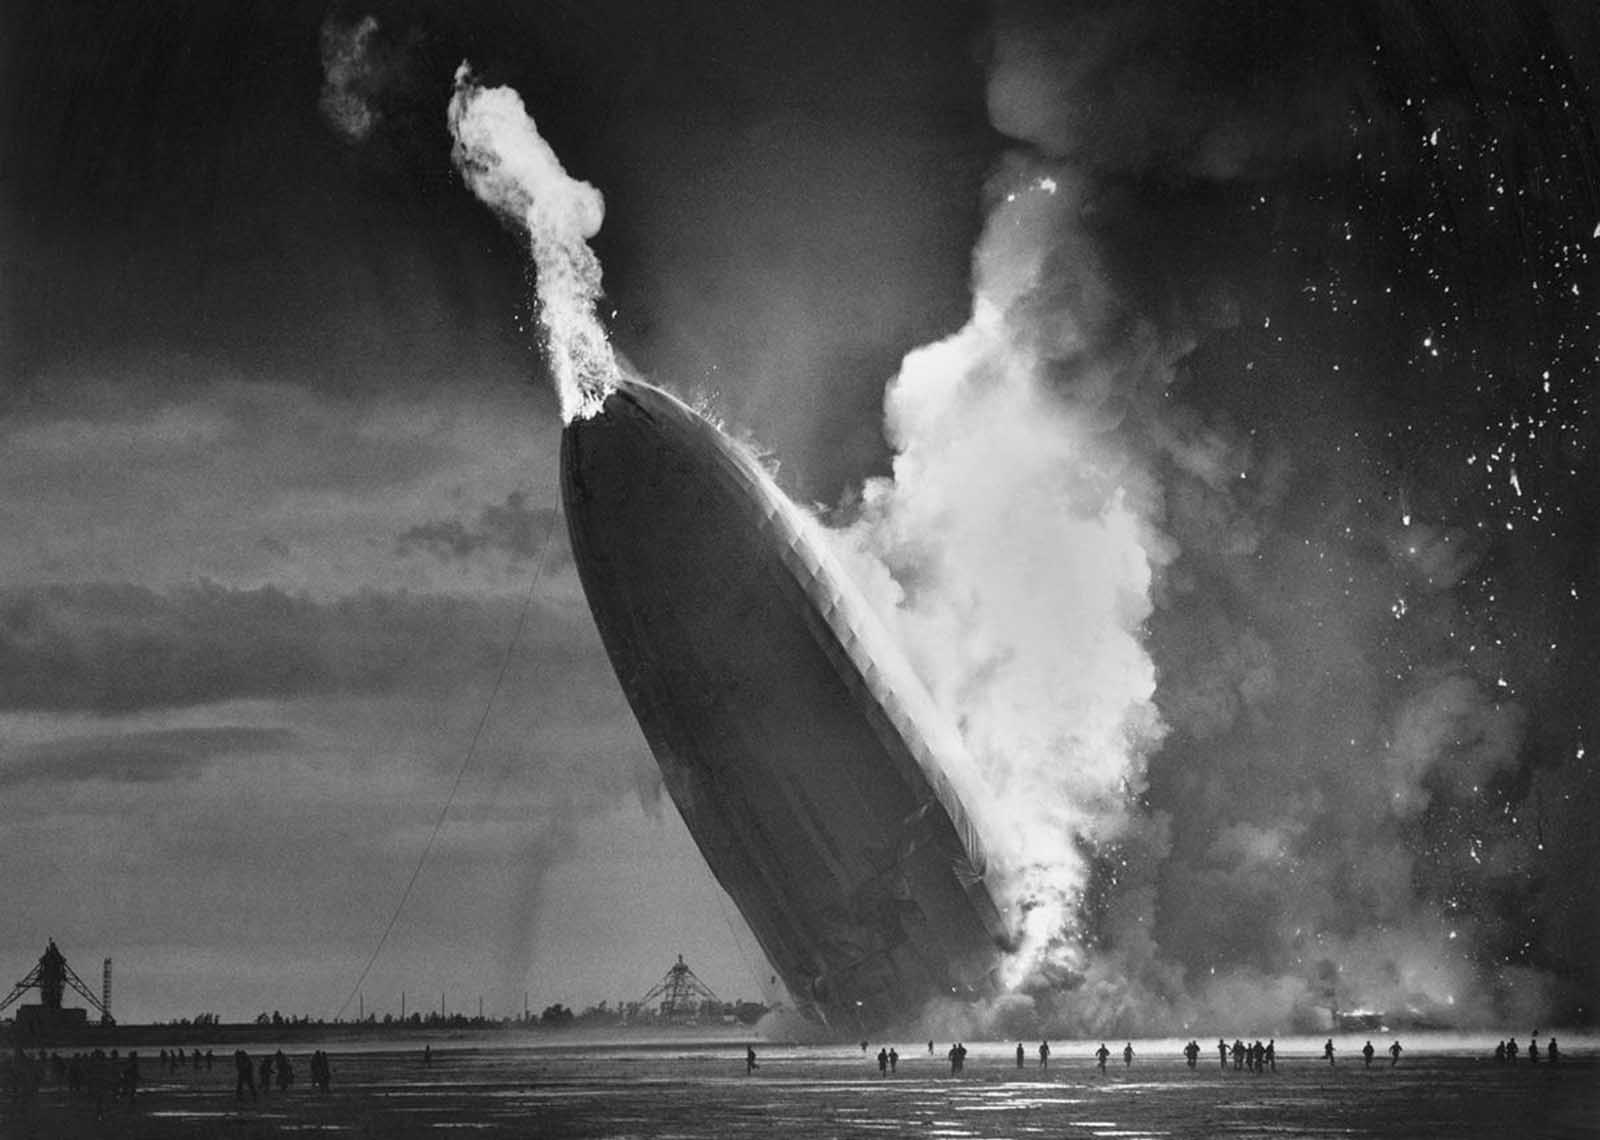 The German dirigible Hindenburg crashes to earth, tail first, in flaming ruins after exploding at the U.S. Naval Station in Lakehurst, New Jersey, on May 6, 1937. The disaster, which killed 36 people after a 60-hour transatlantic flight from Germany, ended regular passenger service by the lighter-than-air airships.